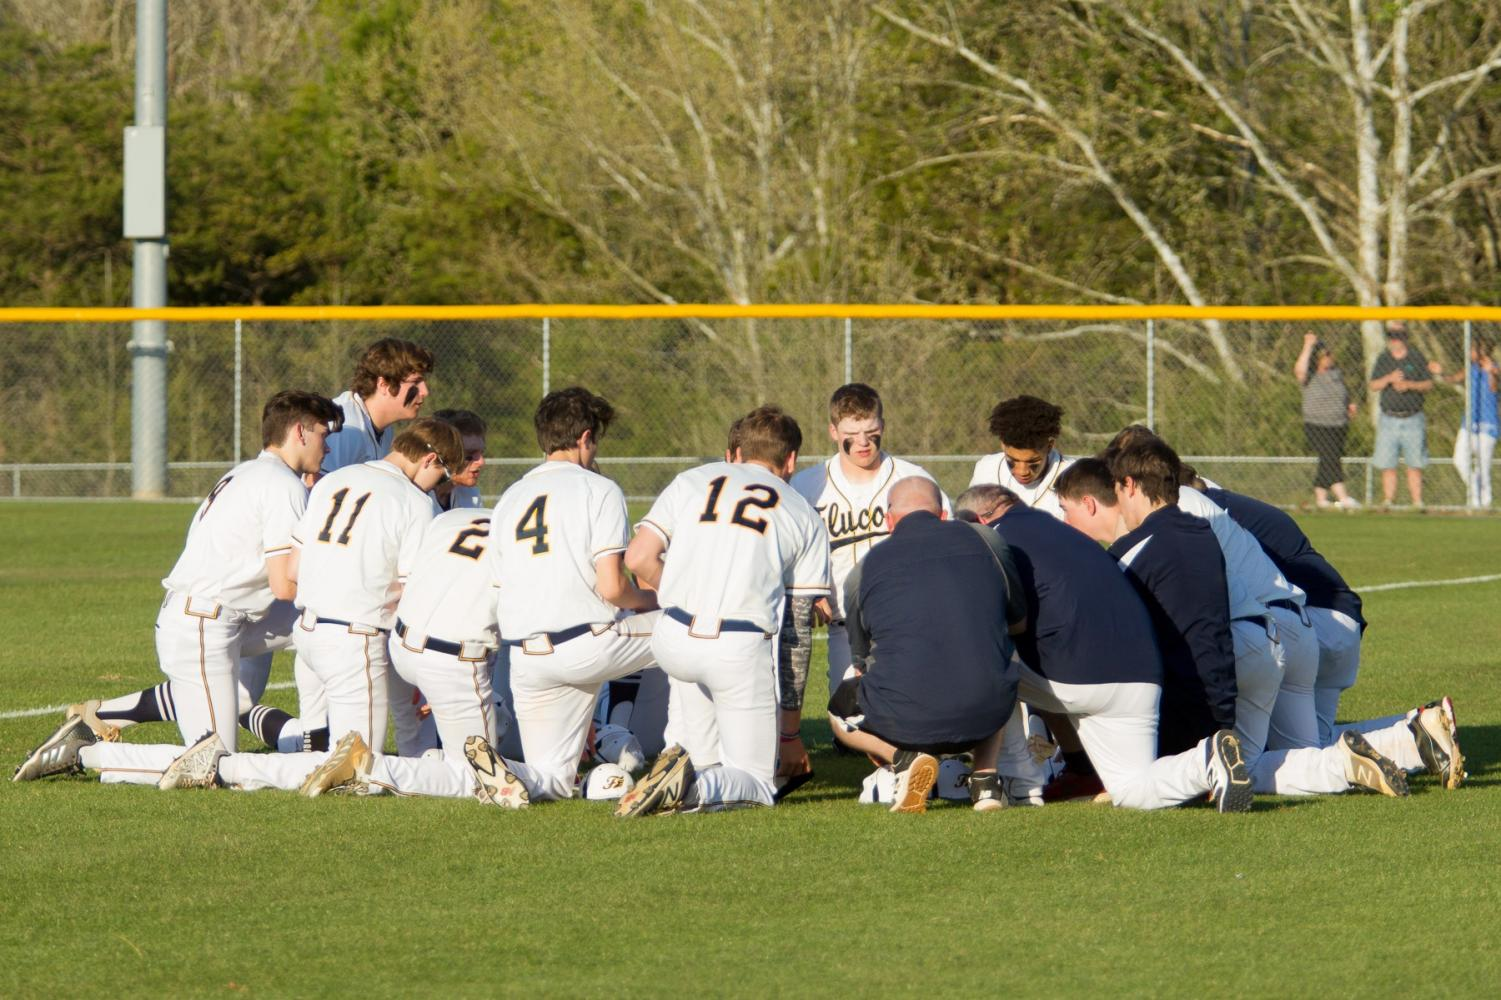 The 2017-18 Varsity Fluco Baseball team in a team huddle at the game against Louisa on 5/1/18.  Photo courtesy of Fluvanna photos.